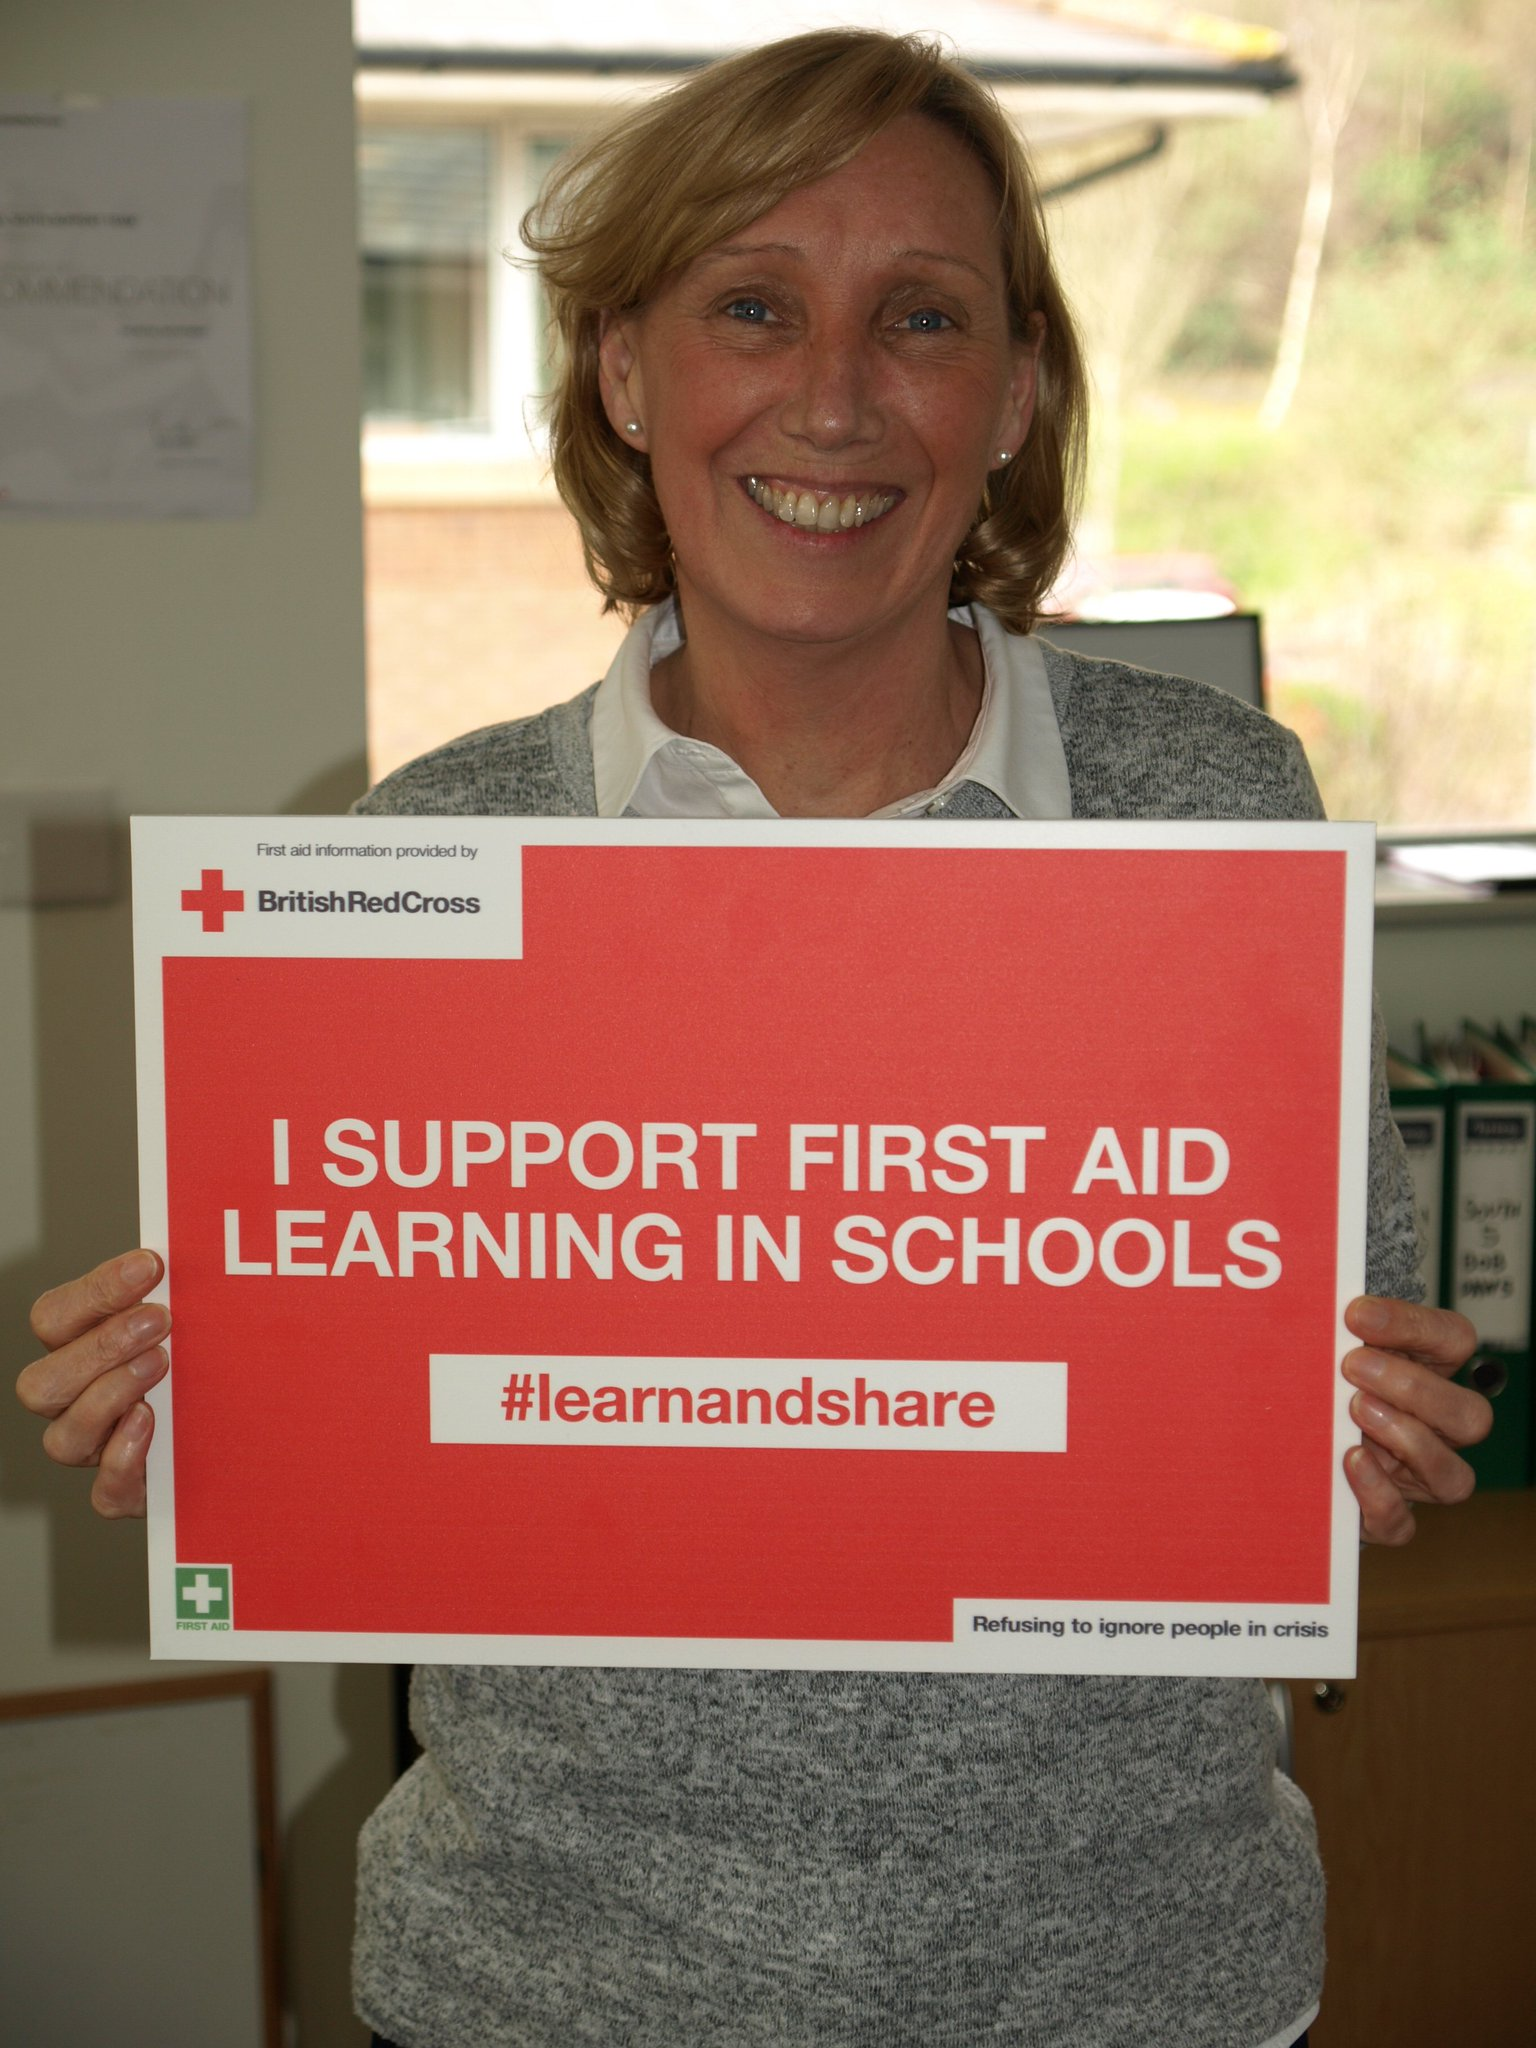 Jane Turner supports first aid learning in schools in Wales. #lifesavingskills are essential so  #learnandshare with @RedCrossWales https://t.co/fT7YFjRk3c